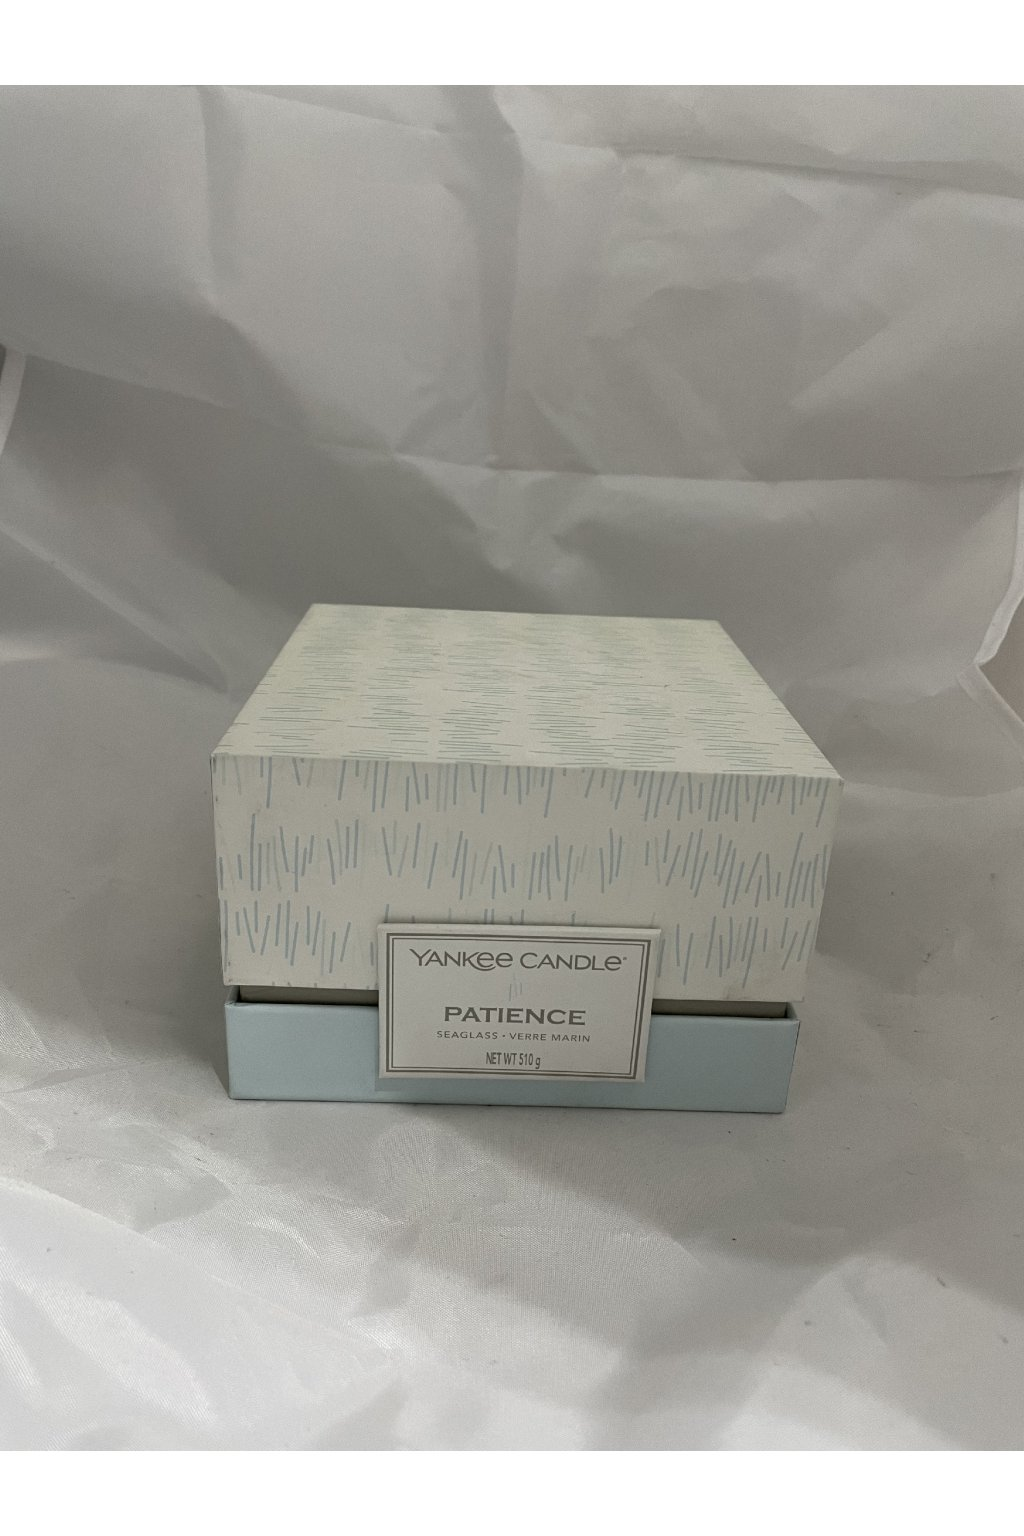 Yankee Candle Patience 510g